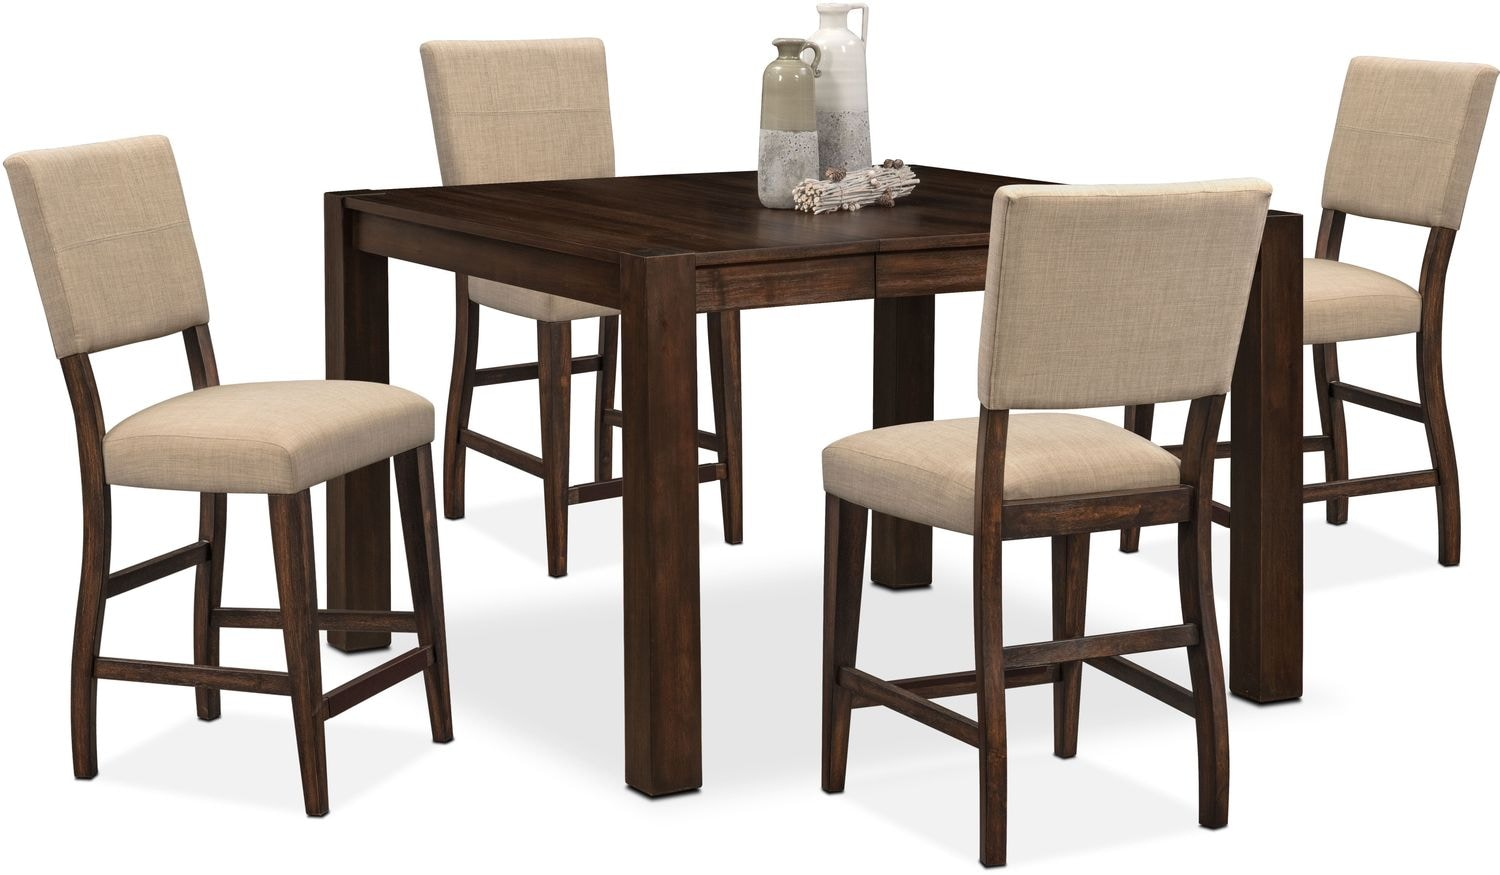 Tribeca Counter Height Table And 4 Upholstered Side Chairs   Tobacco